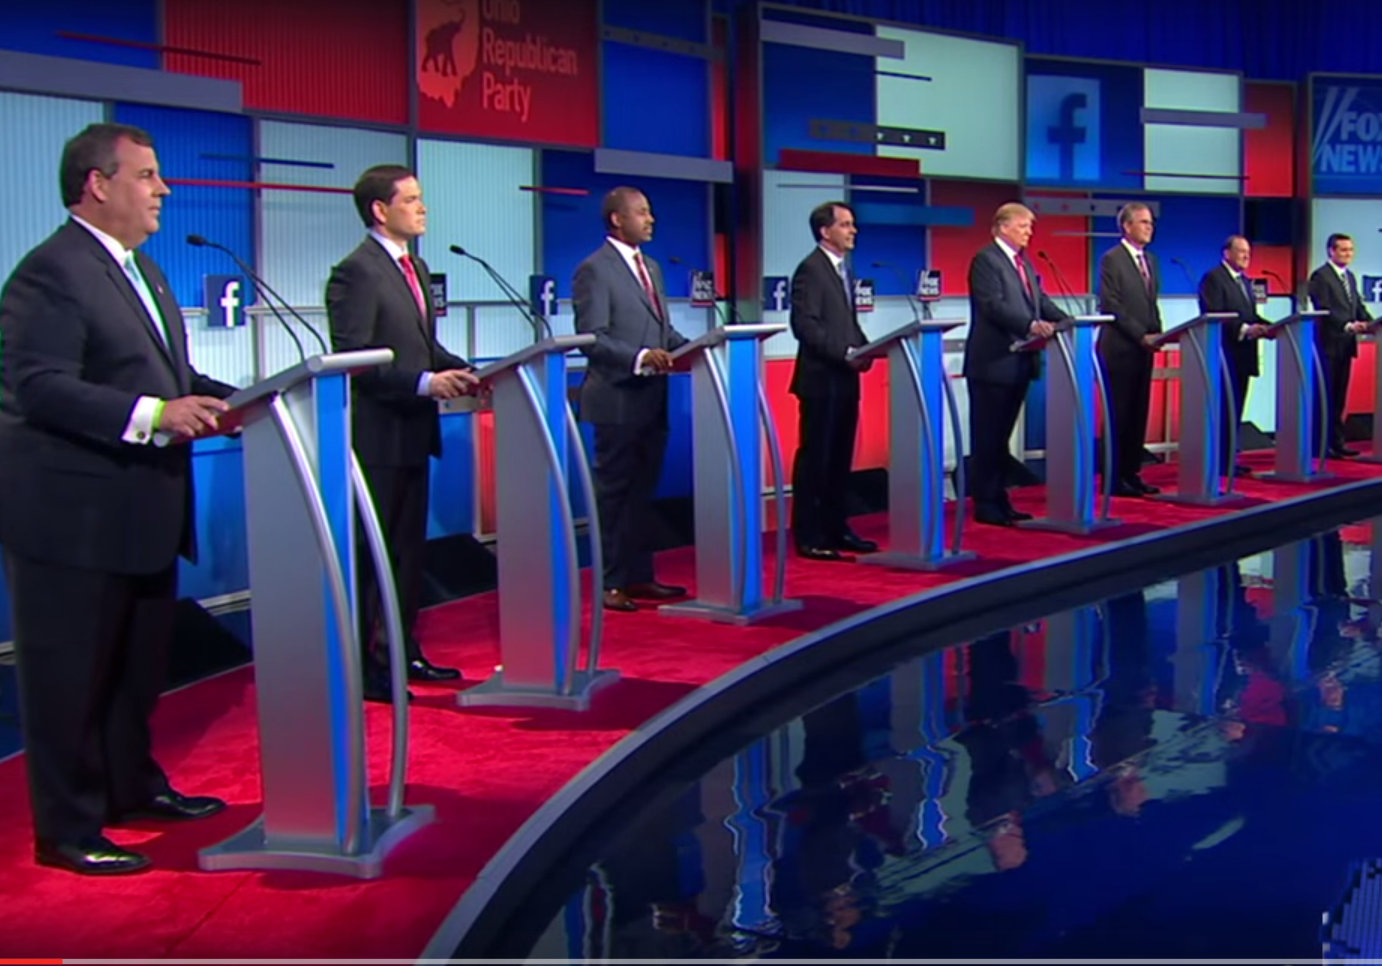 Foreign Policy Debate Questions That Need Answering